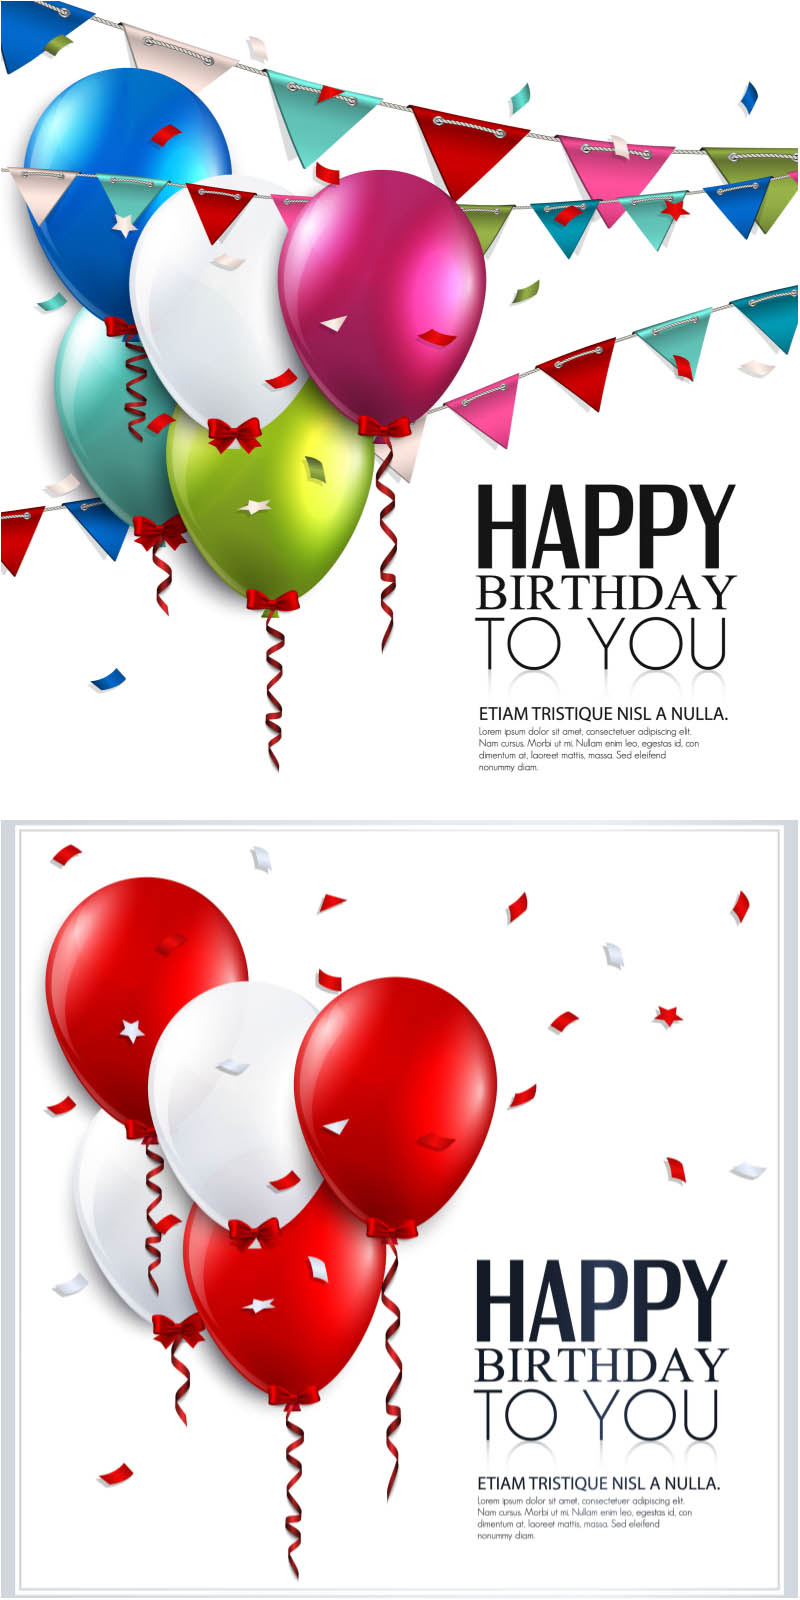 Happy Birthday to You Graphics